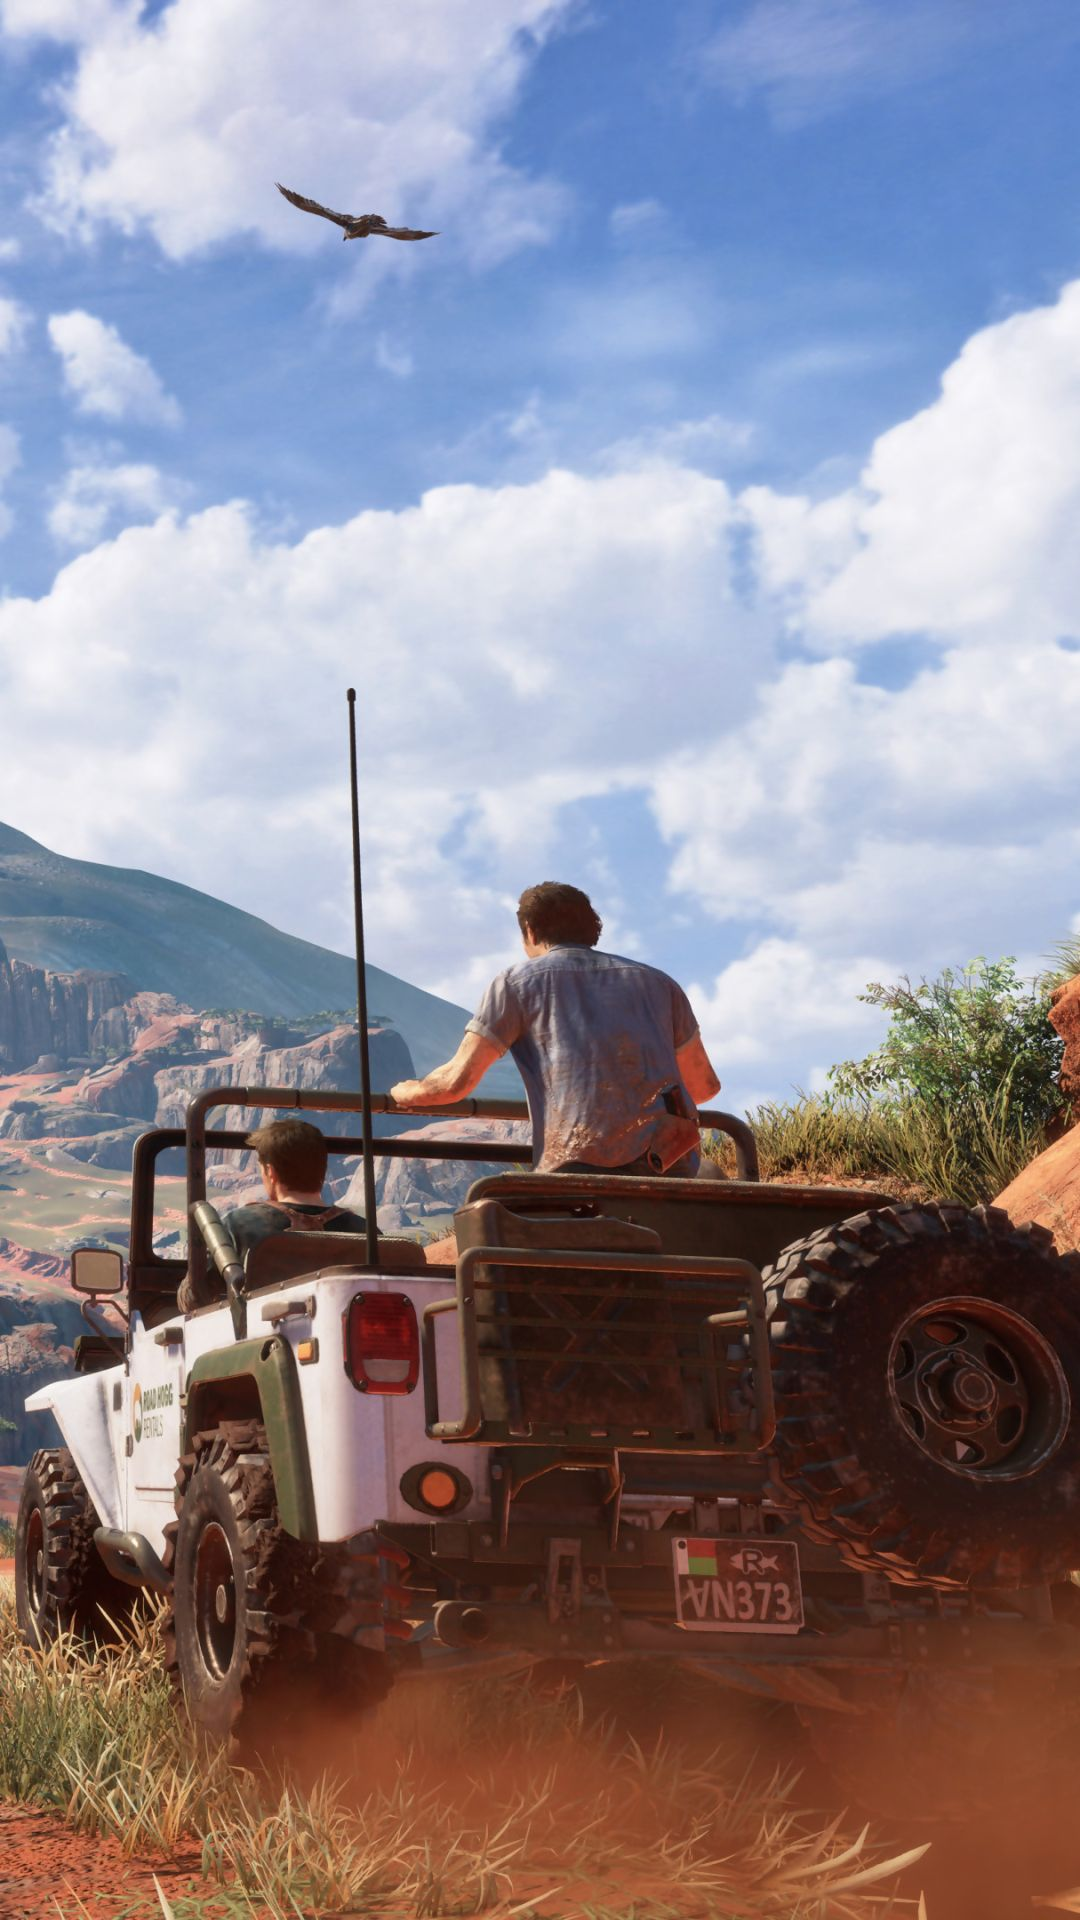 Uncharted 4 Wallpapers High Definition Hupages Download Iphone Wallpapers In 2020 Uncharted Game Uncharted Uncharted Artwork